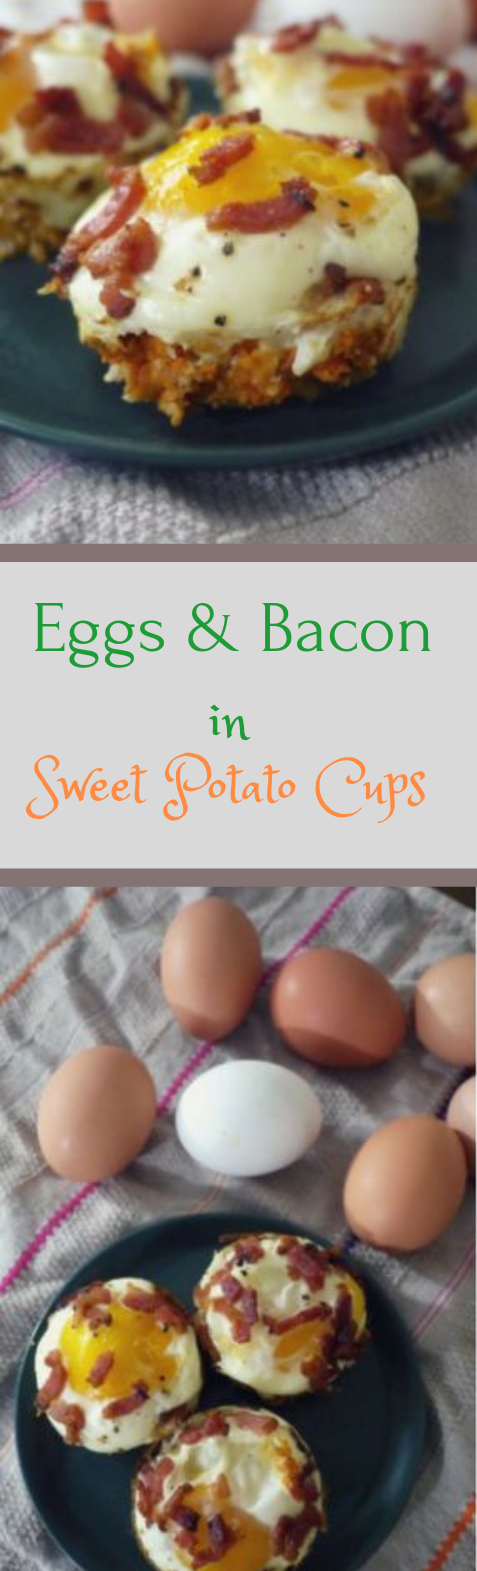 EGGS AND BACON IN SWEET POTATO CUPS #diet #bacon